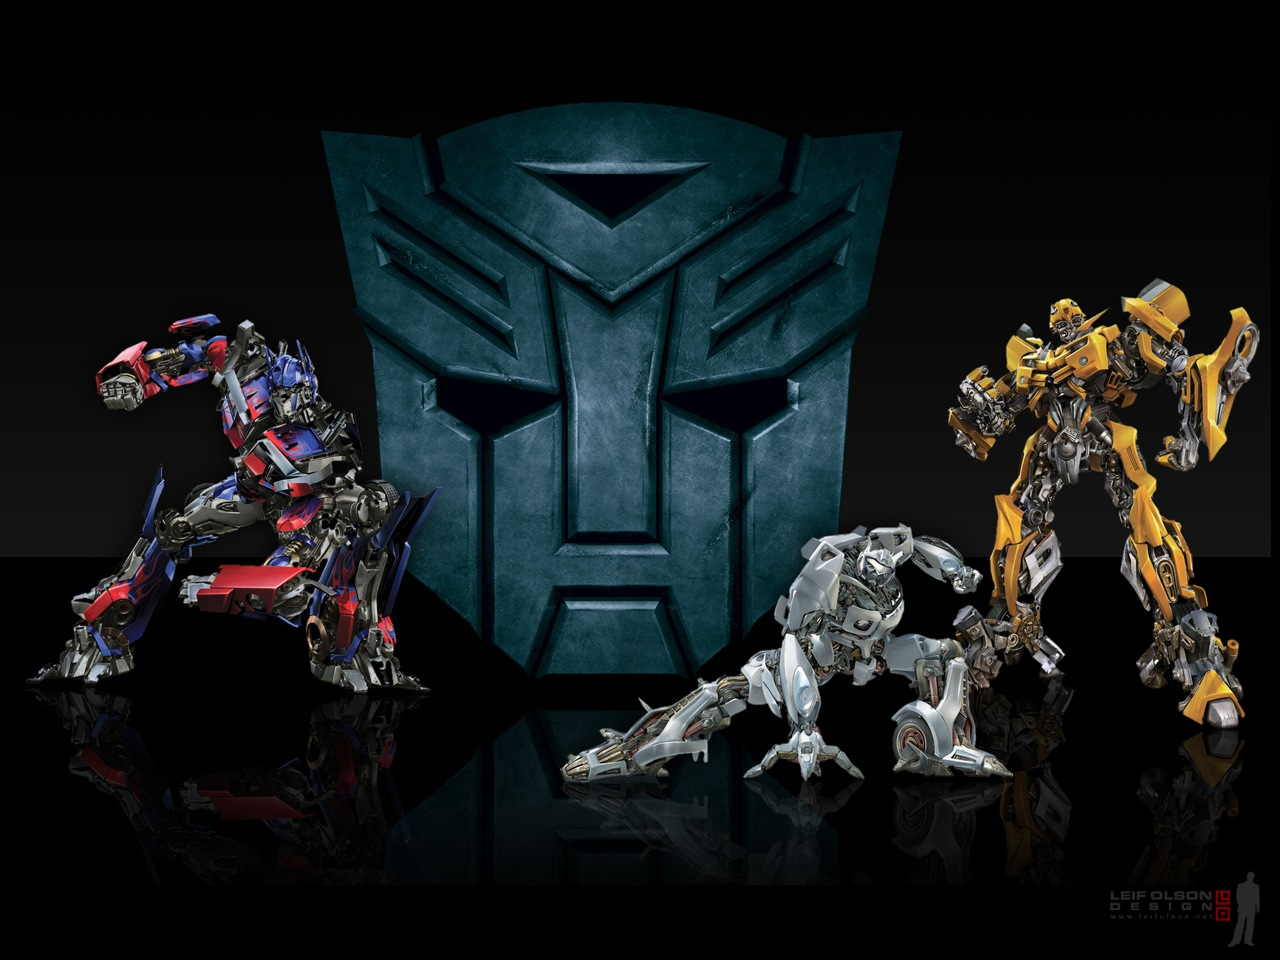 Best Transformer Movie High Quality Wallpapers Whats Up 1280x960